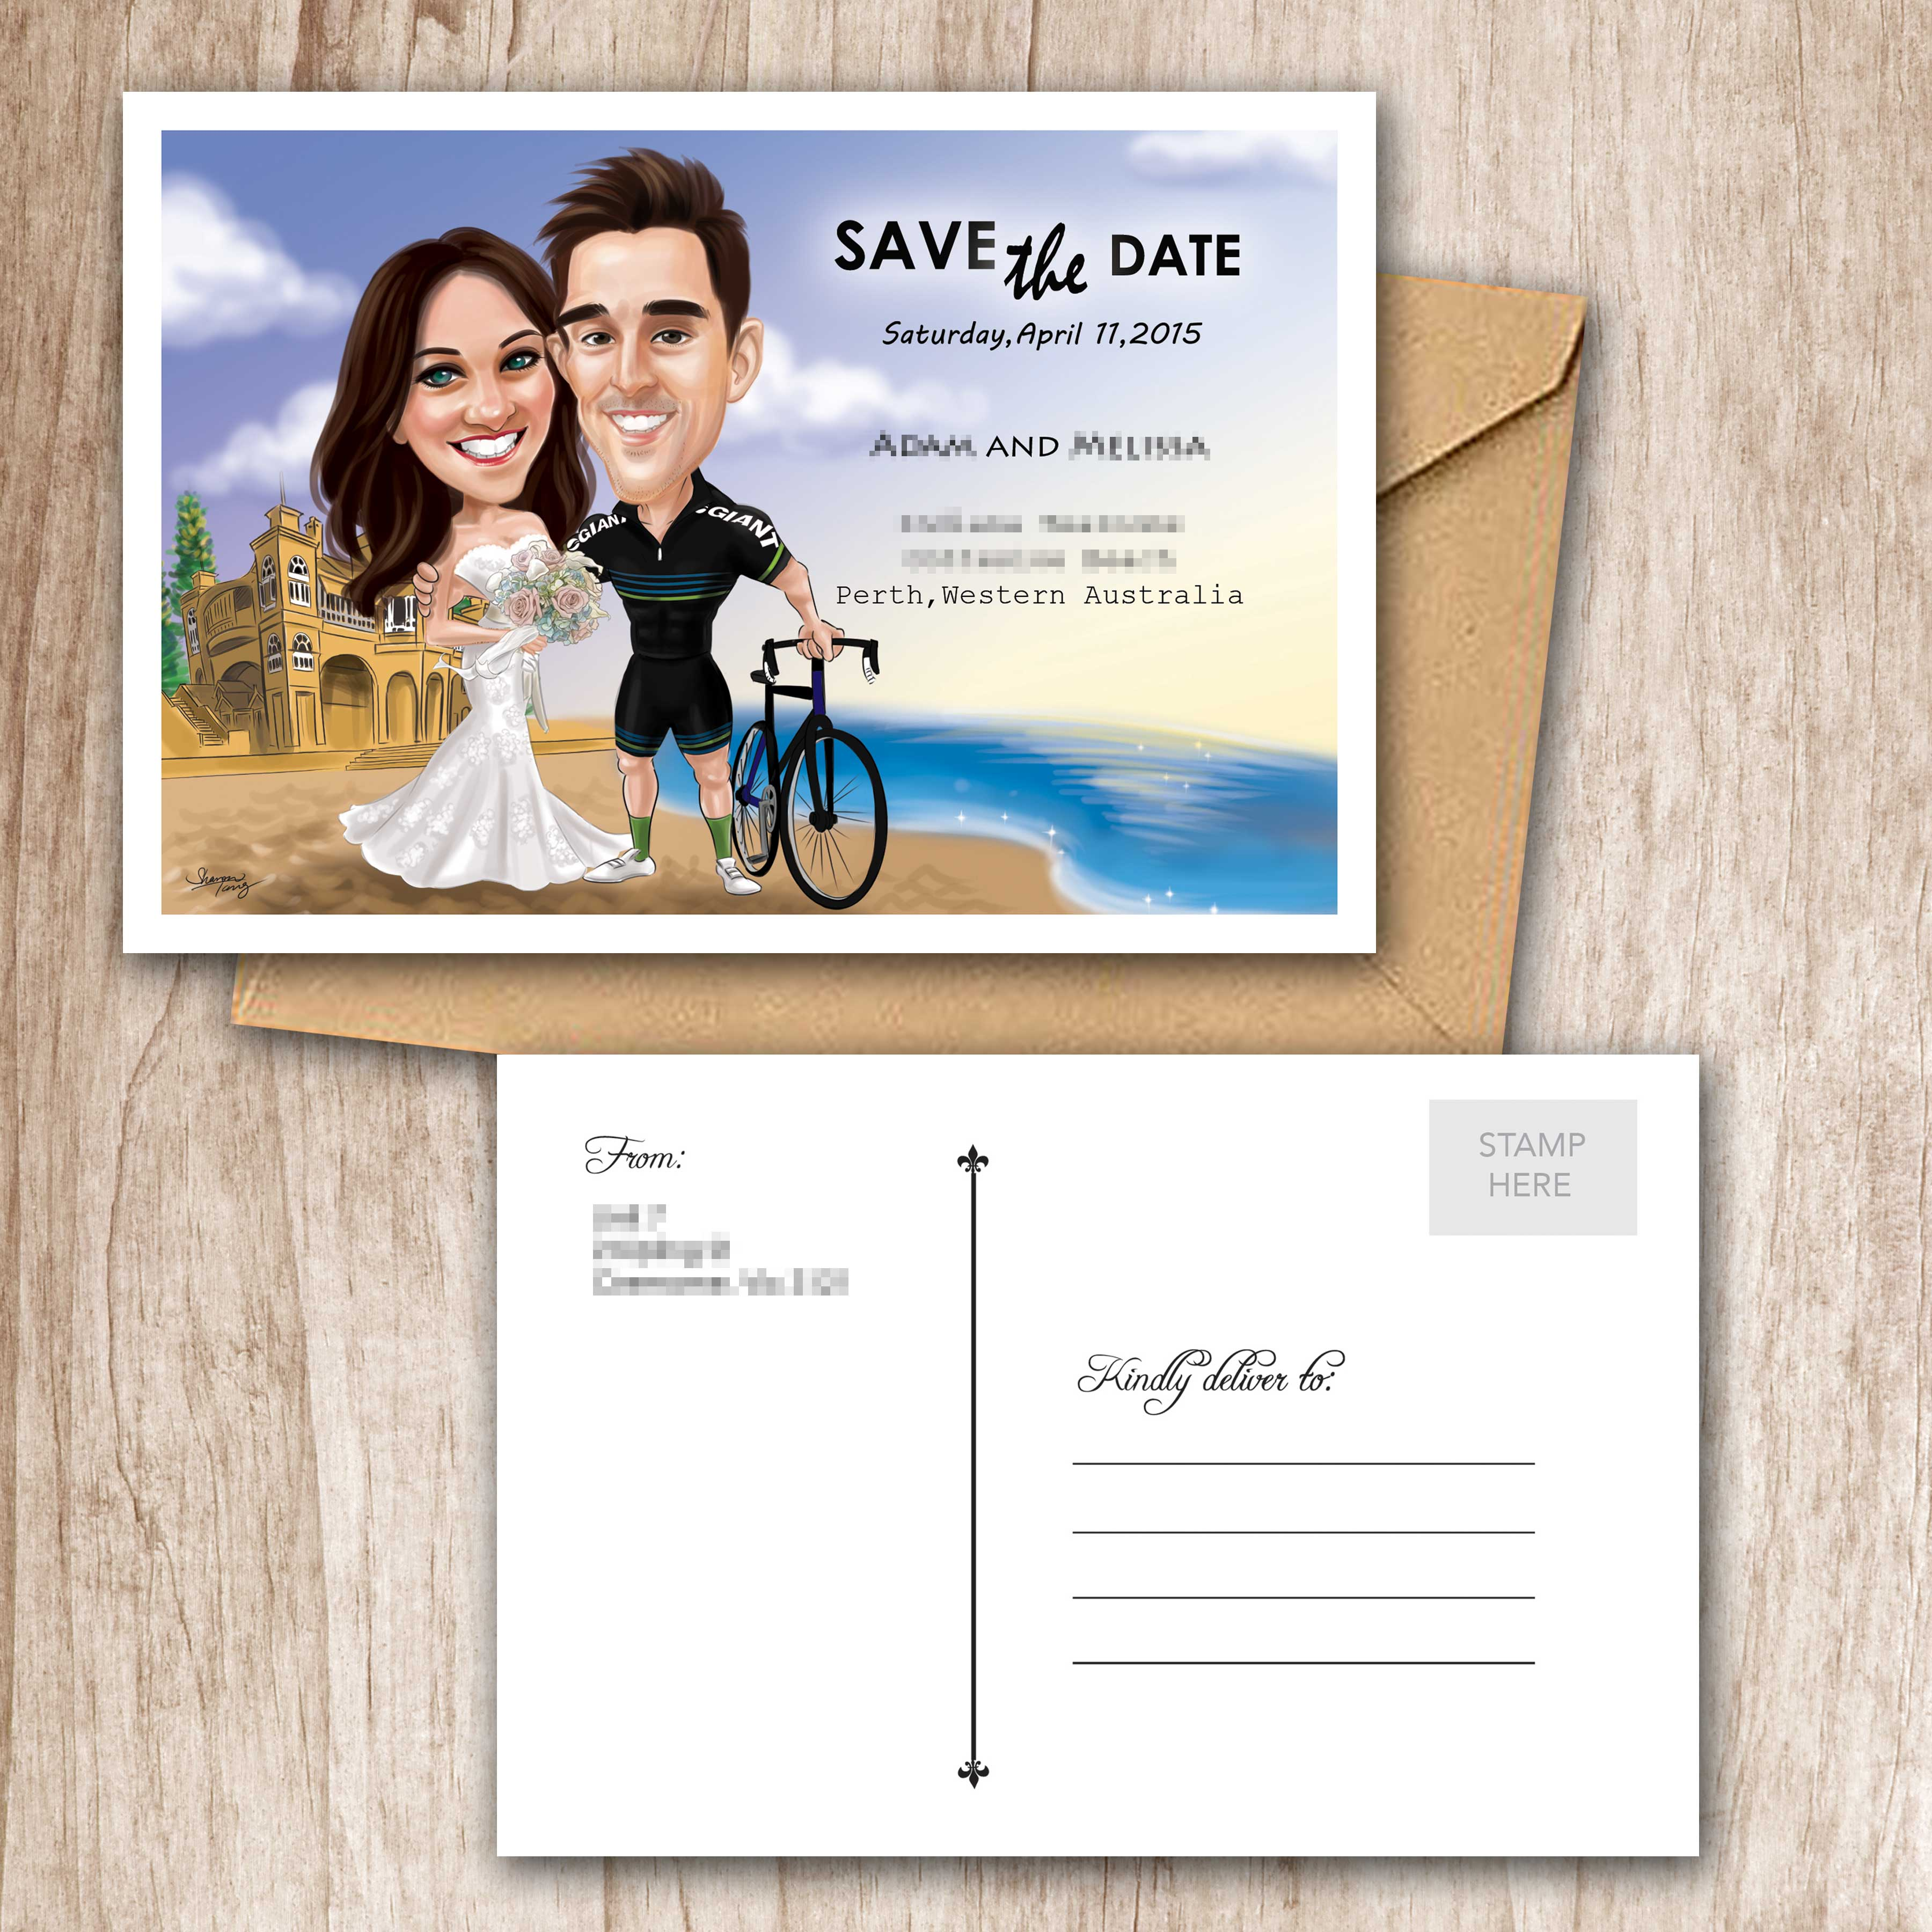 Wedding gifts shakes caricature wedding invitation save the date card 1 stopboris Image collections